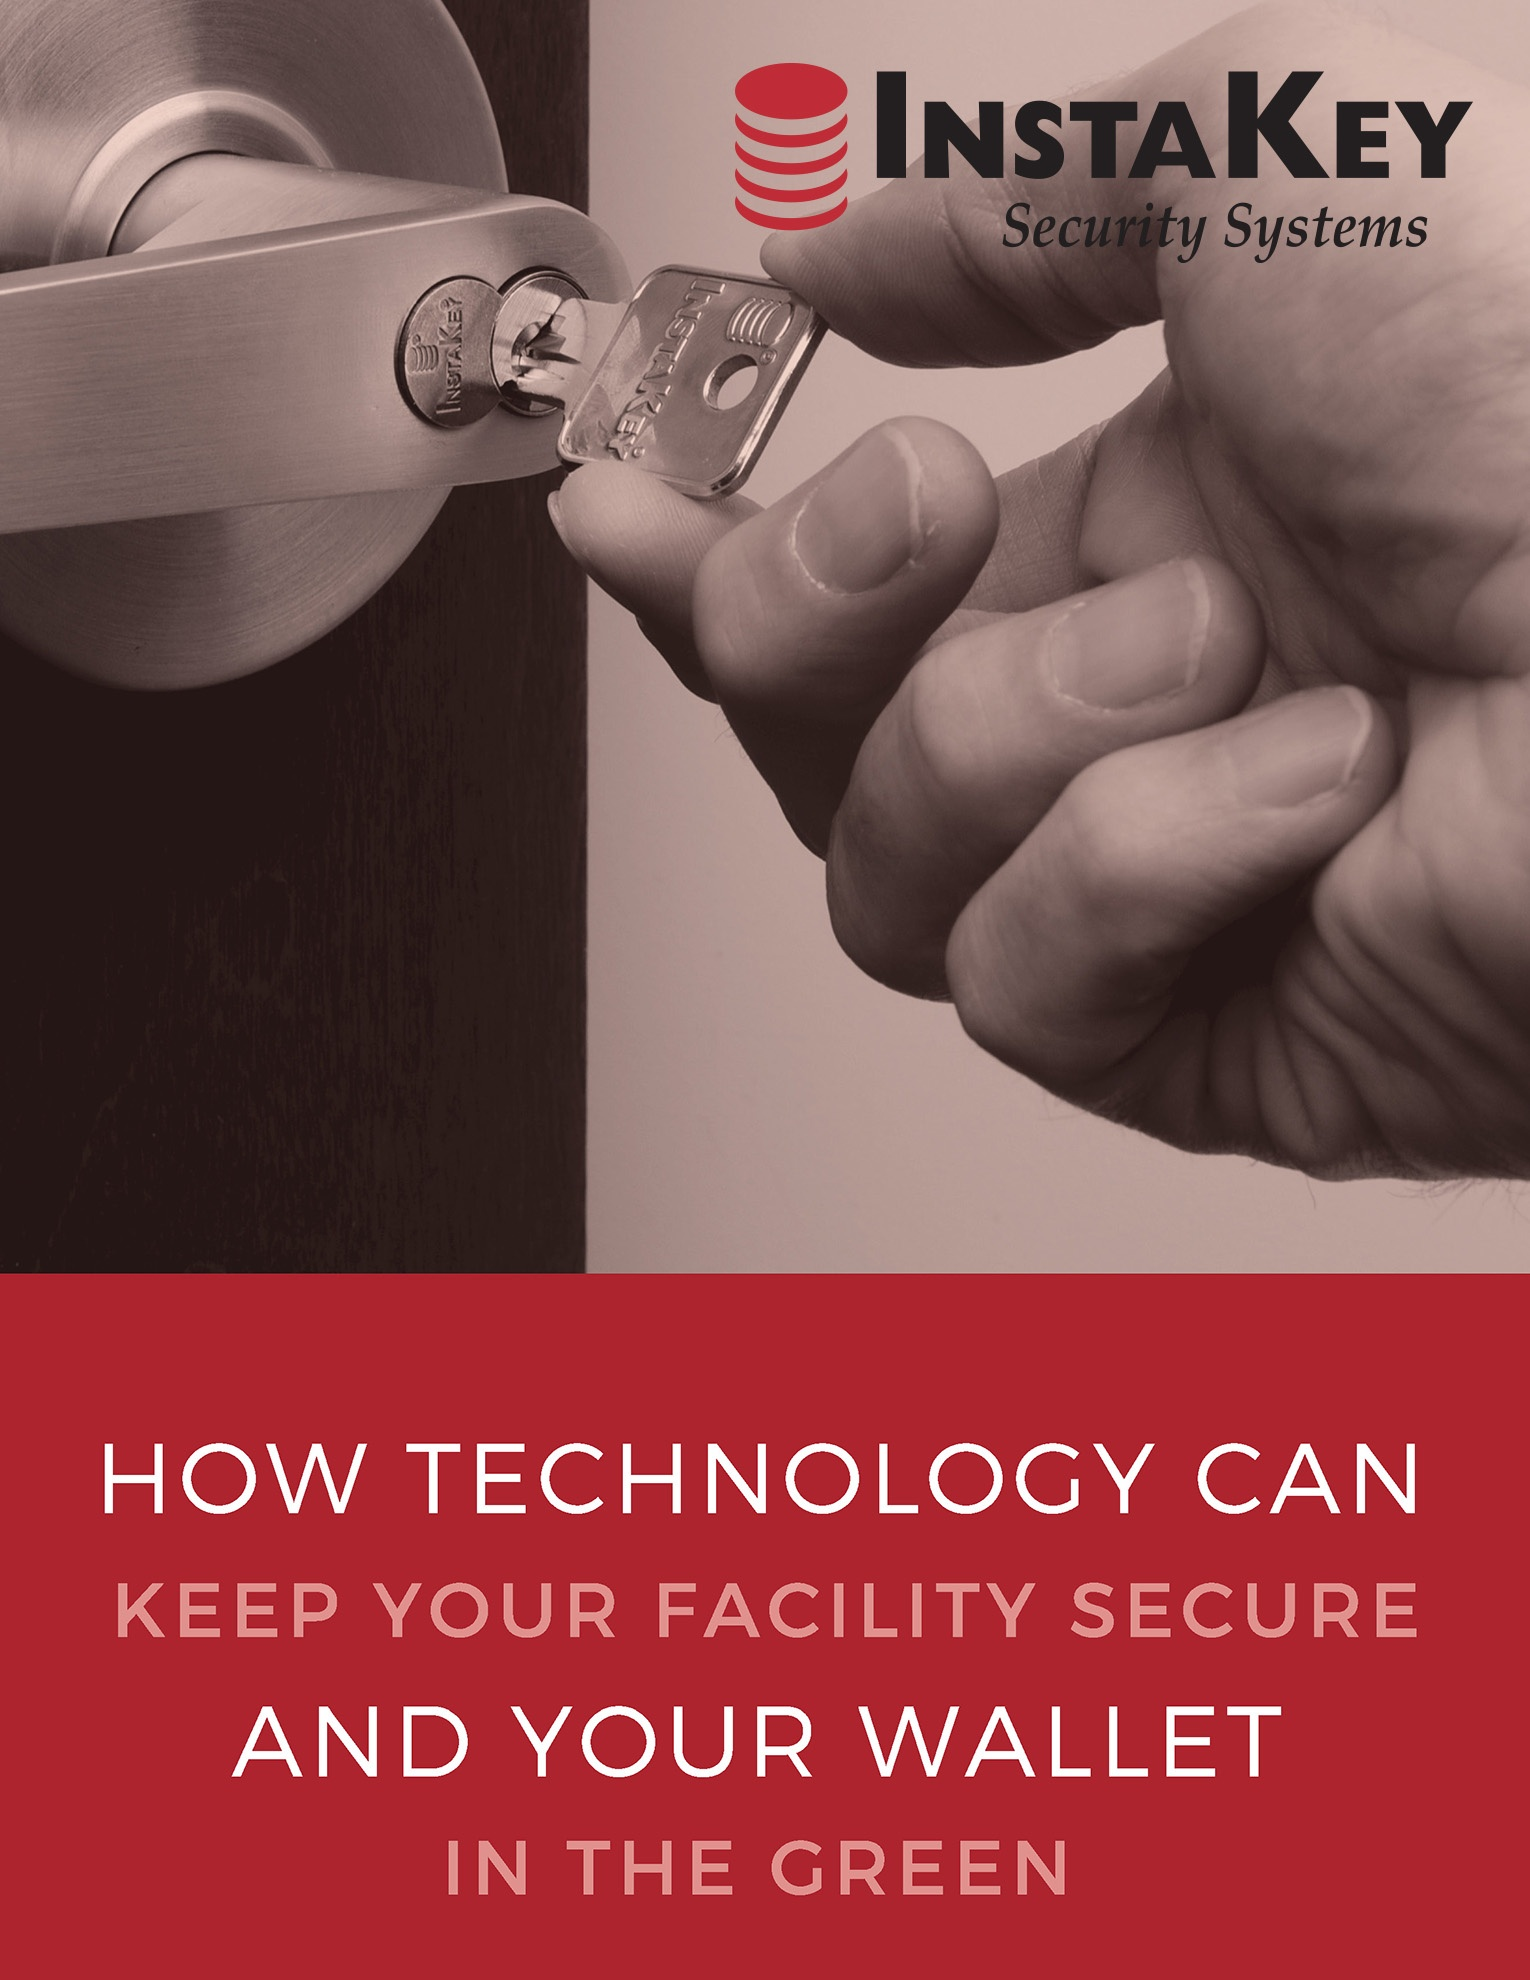 How Technology Can Keep Your Facility Secure and Your Wallet in the Green